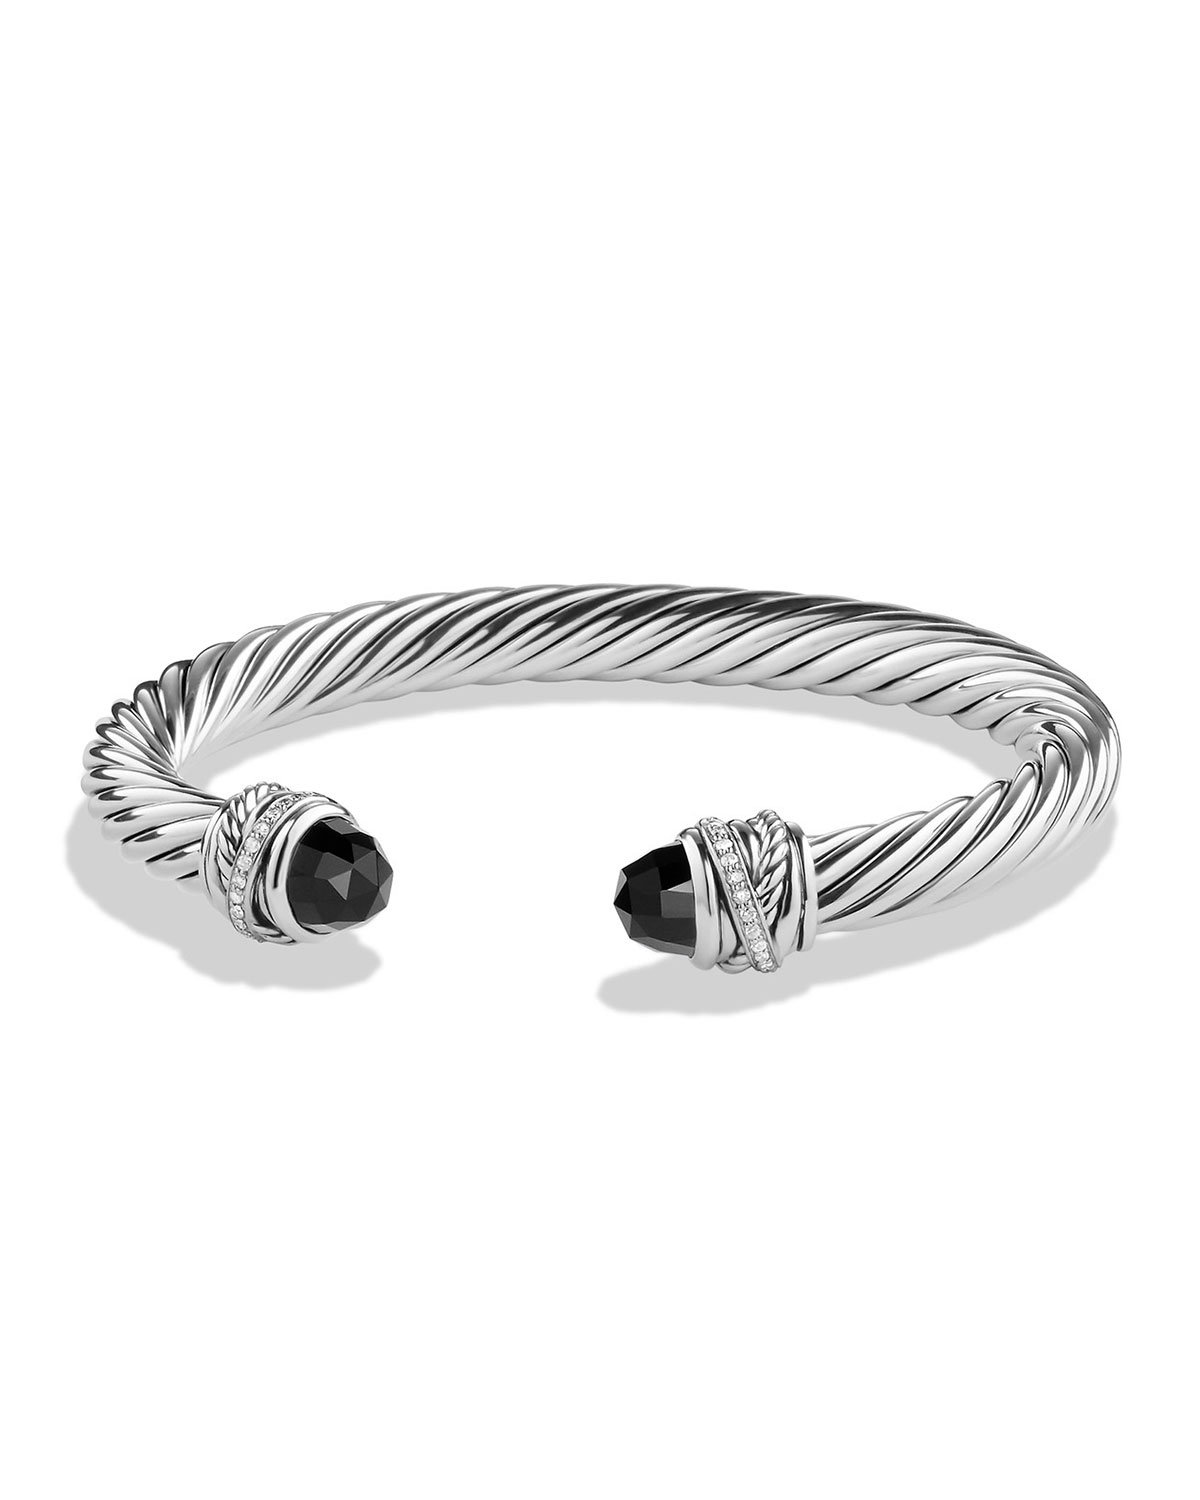 David Yurman Charm Bracelet: David Yurman 7mm Black Onyx & Diamond Crossover Bracelet